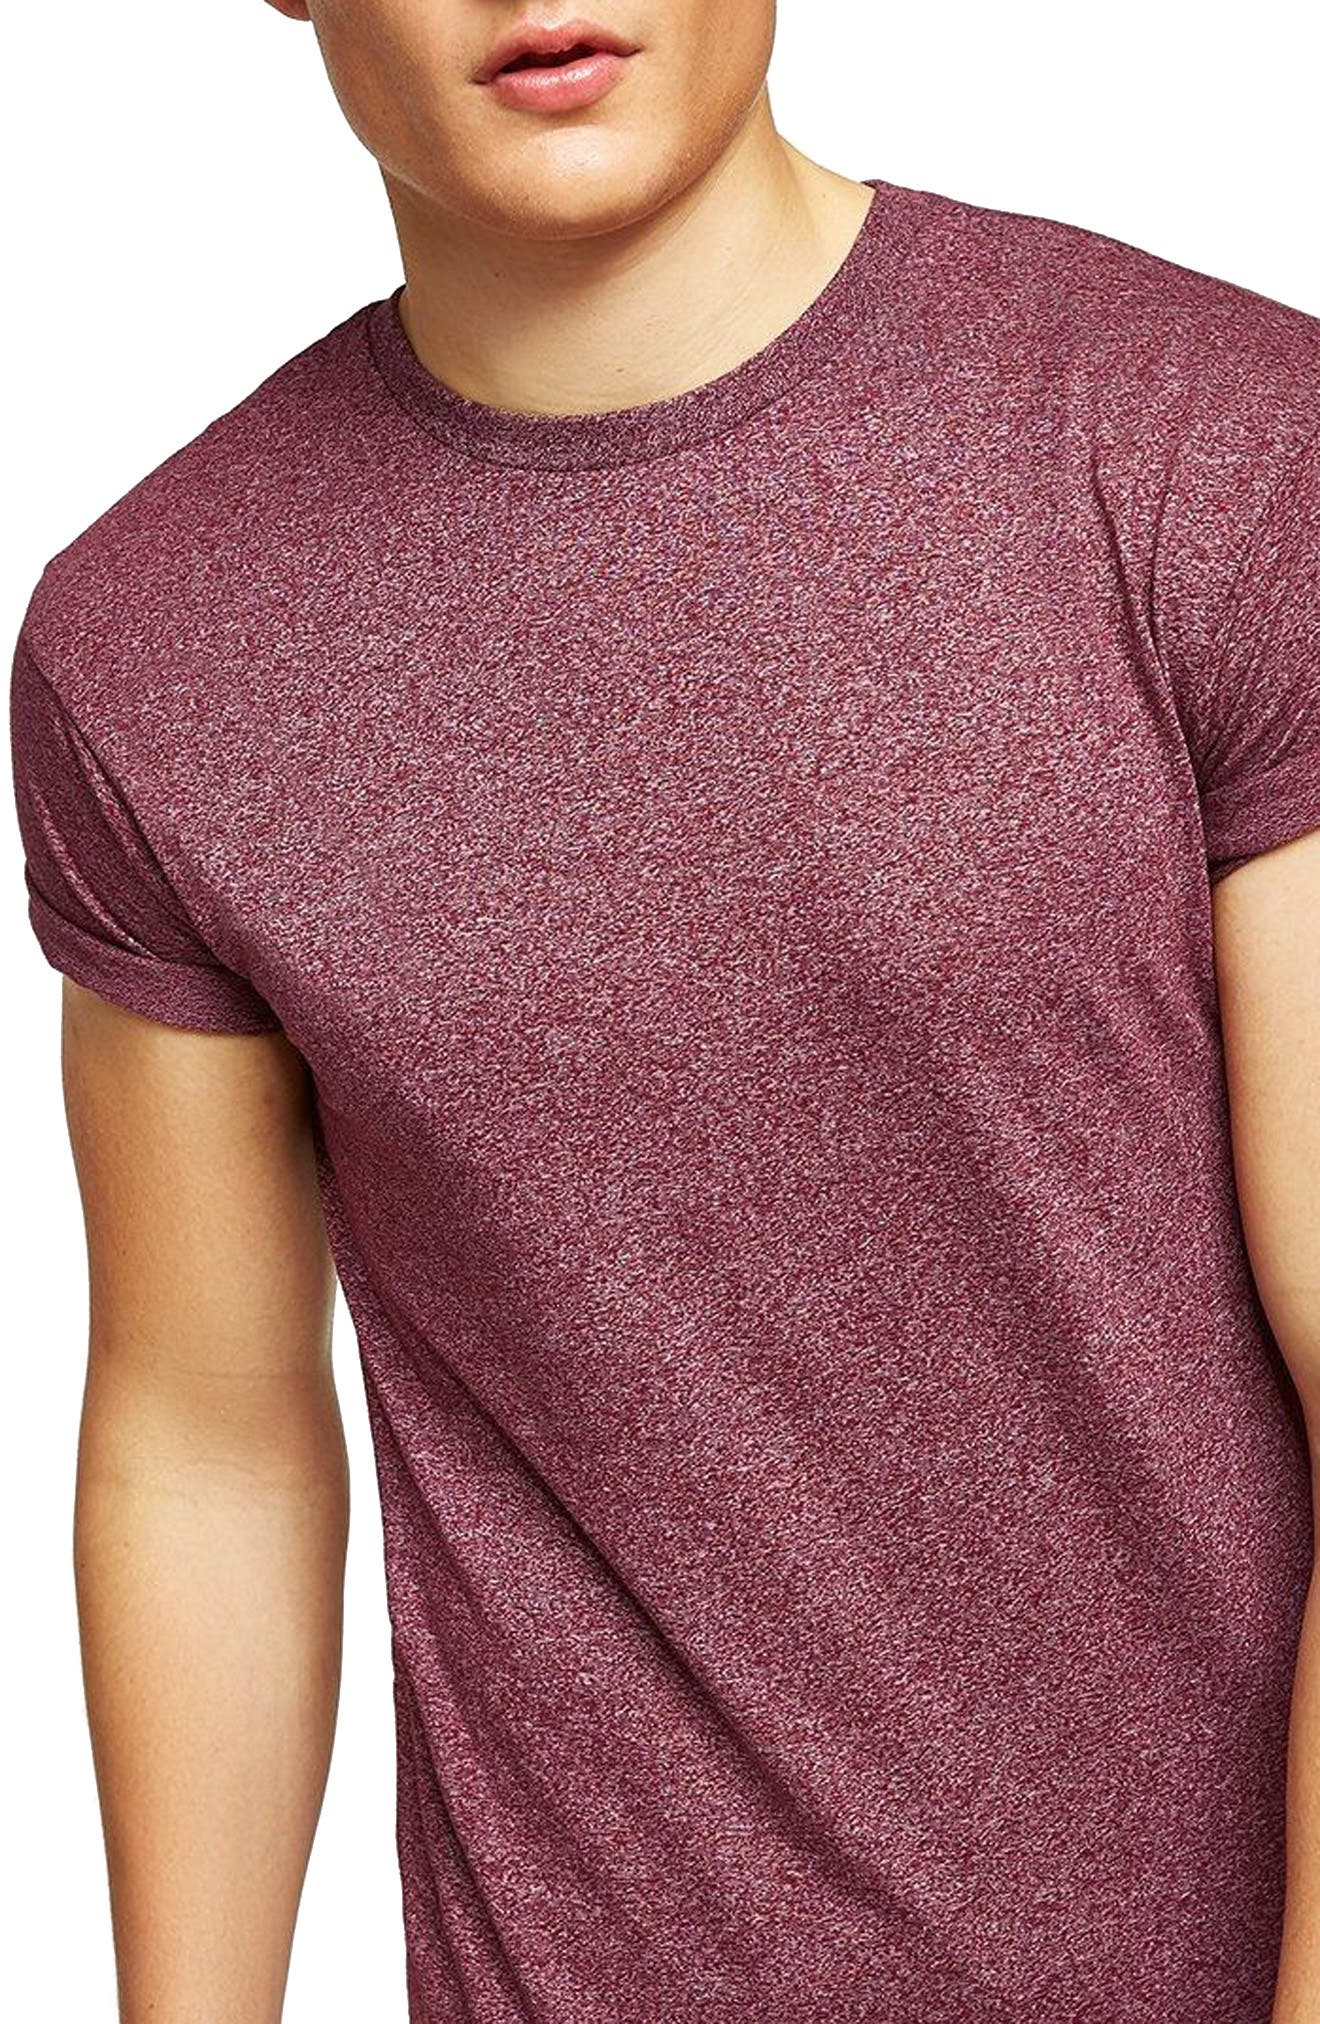 Muscle Fit Flecked T-Shirt,                             Main thumbnail 1, color,